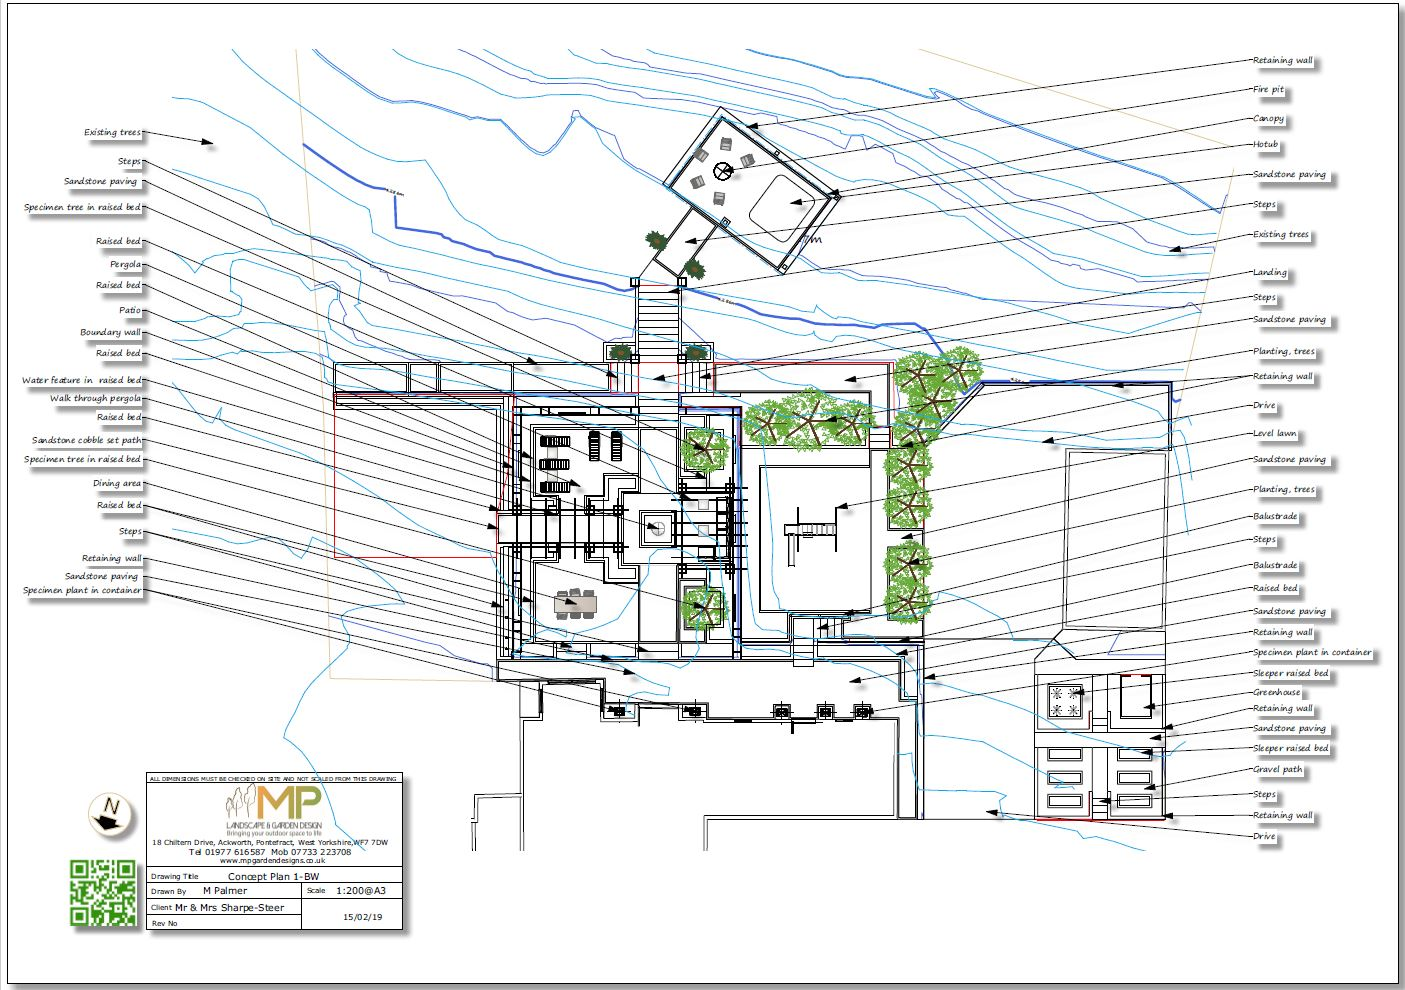 Concept Garden design plan-2 for a property in Wakefield, West Yorkshire.